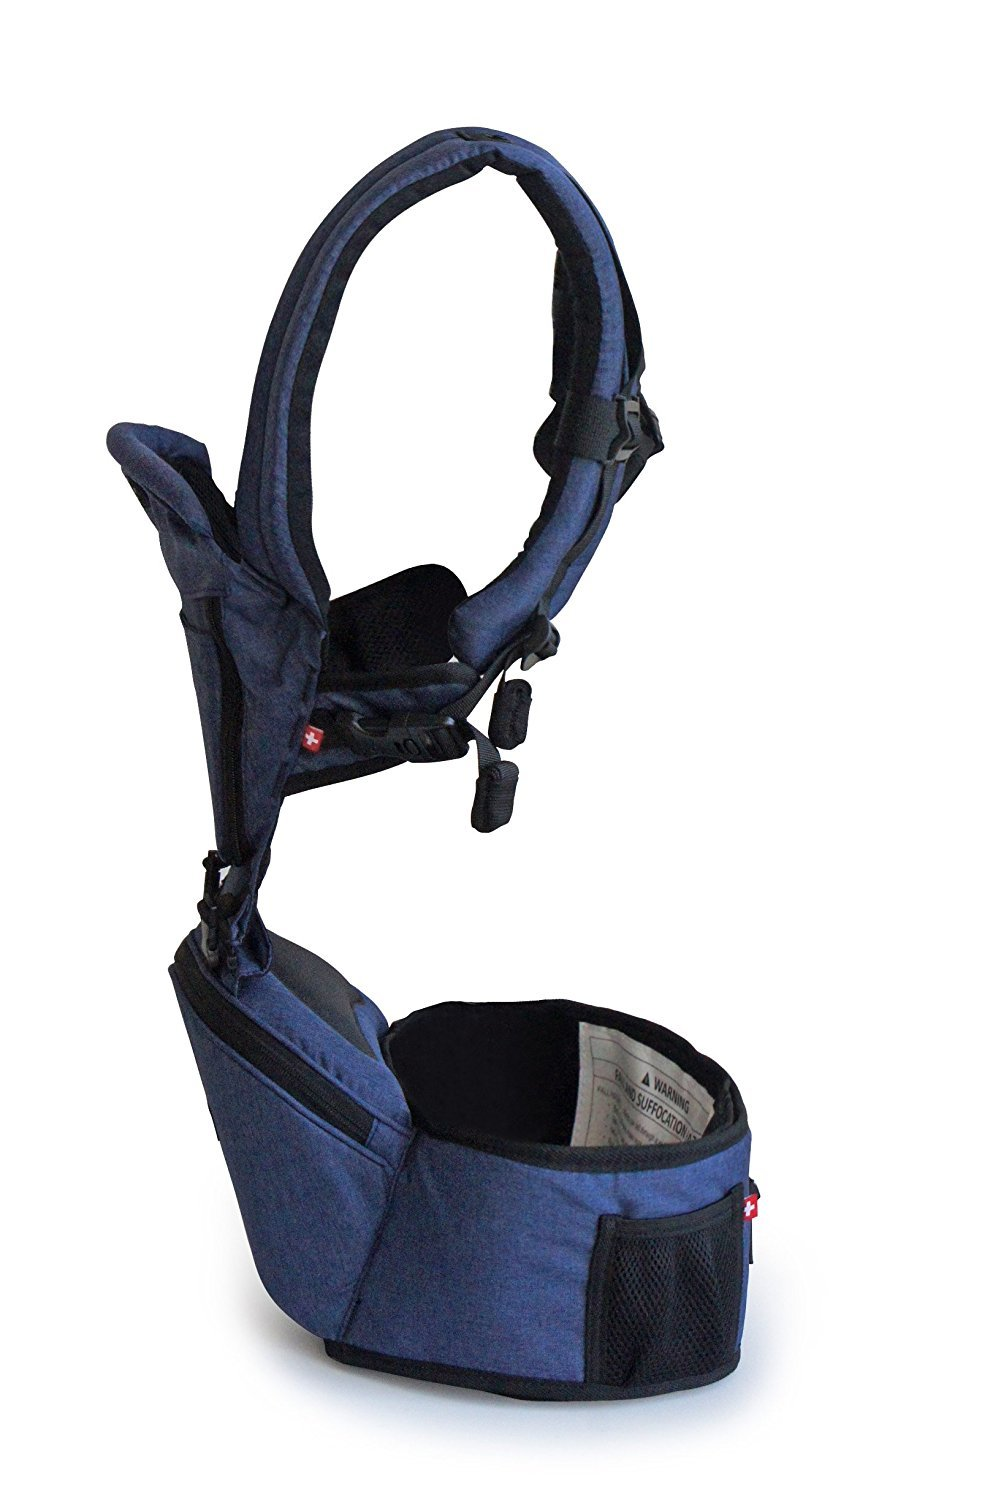 Hipster Plus Baby Front Carrier (Denim) MiaMily PREMIUM SWISS QUALITY - Inspired by parents who want the most natural fabrics for their babies. Safety is our top priority therefore we only use PREMIUM materials like self-locking YKK zippers and Duaflex buckles. Our shoulder strip was designed with a 3-way lock buckle for extra security and 3D ADJUSTABLE system, to easily adjust the fit from front and back. FITS ALL SHAPES AND SIZES - Tall or short our carrier will support your baby from 3 months to 4 years ( until they weigh 44 lbs. HIPSTER Plus 3D is a versatile ergonomic baby backpack that allows you to carry your baby 9 different ways (including front, forward facing, back, and hip carry positions). ELIMINATES BACK PAIN AND RUBBING - Built in ergonomic hip seat, hip seat carrier provides maximum comfort for parents with ergonomic design, which allows weight to evenly distribute between the wearer's hips and shoulders and allows baby to be in a natural sitting position at all times. 2